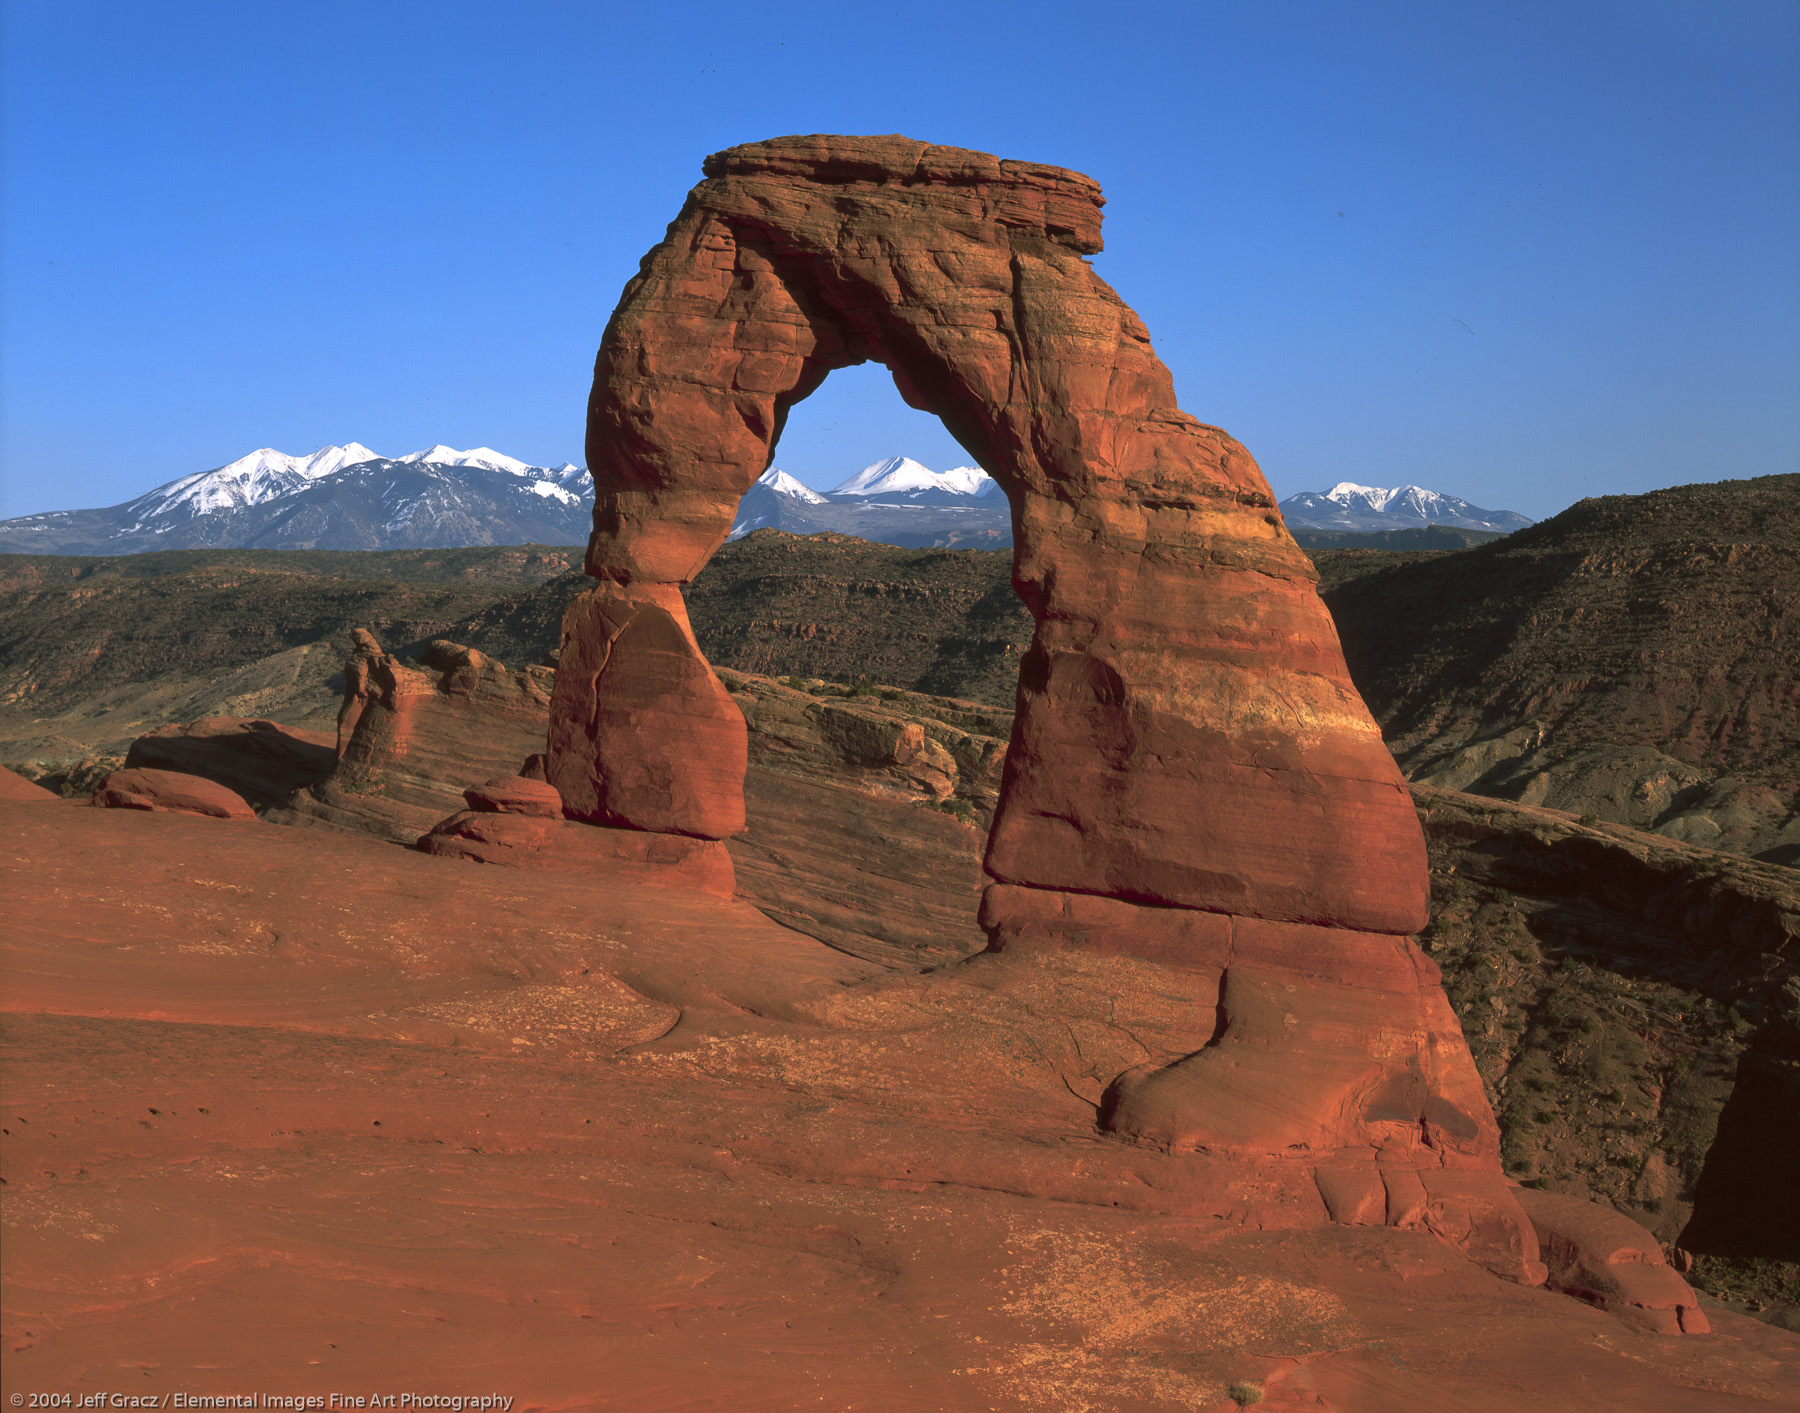 Delicate Arch with distant La Sal Mtns | Arches National Park | UT | USA - © © 2004 Jeff Gracz / Elemental Images Fine Art Photography - All Rights Reserved Worldwide